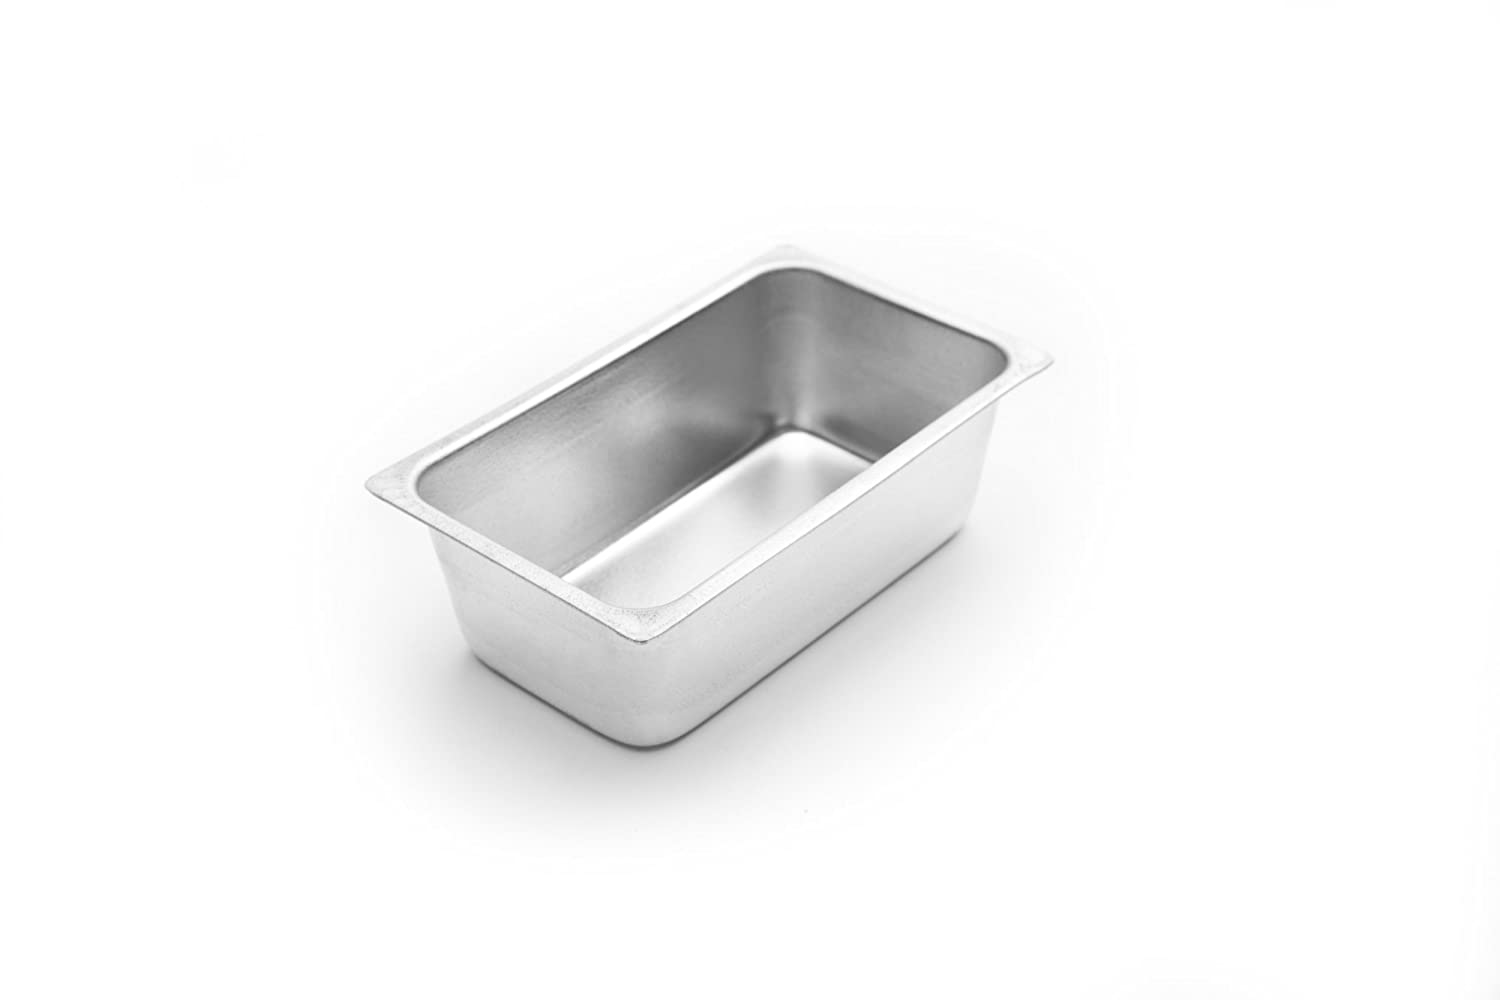 Fox Run 4668 Mini Bread Pan, Tin-Plated Steel, 4-Inch